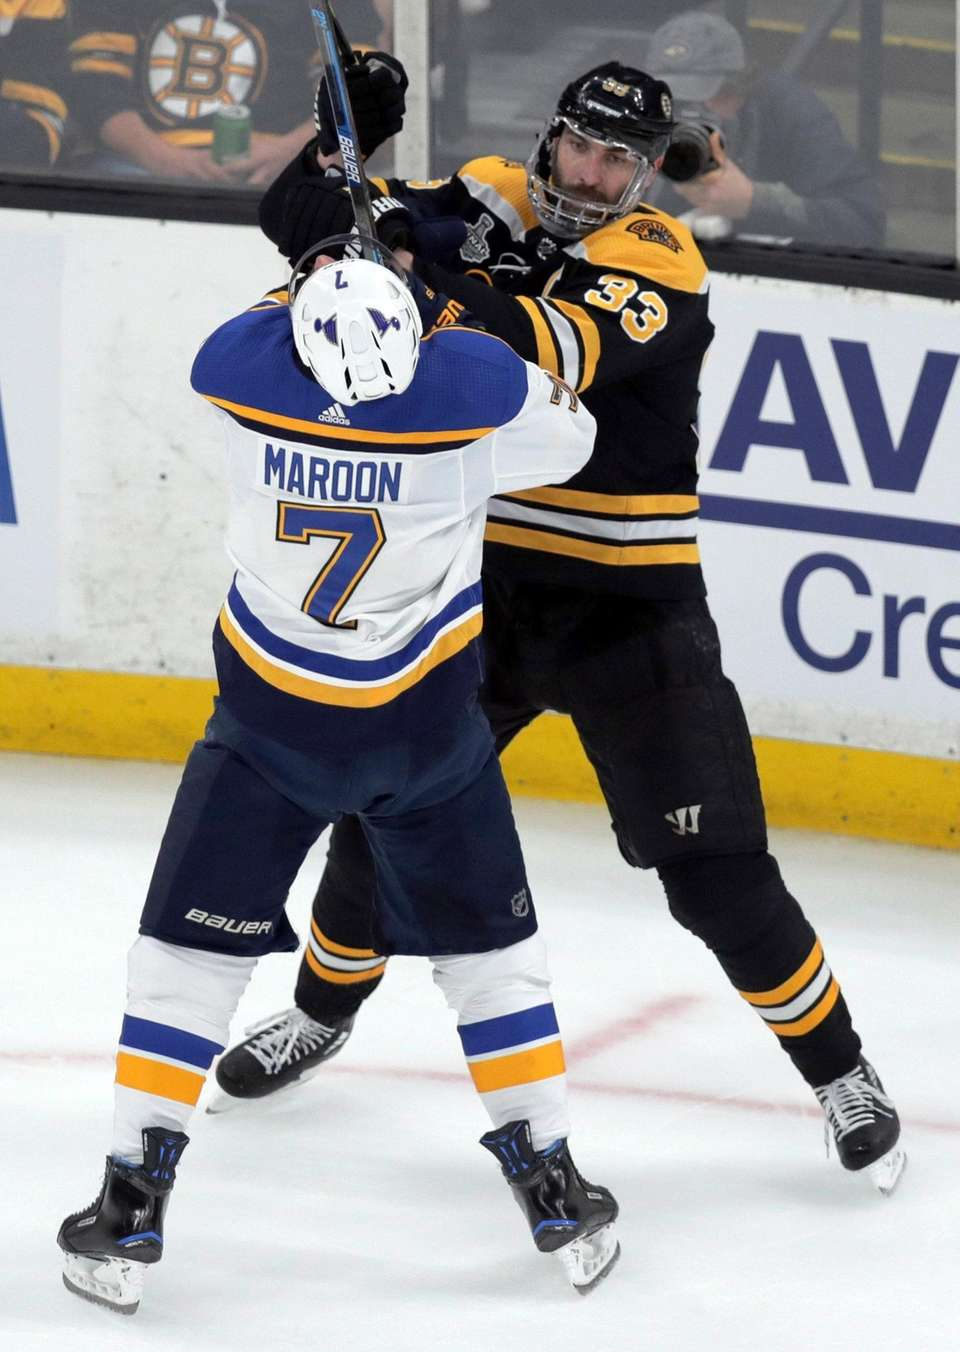 St. Louis Blues' Pat Maroon tangles with Boston